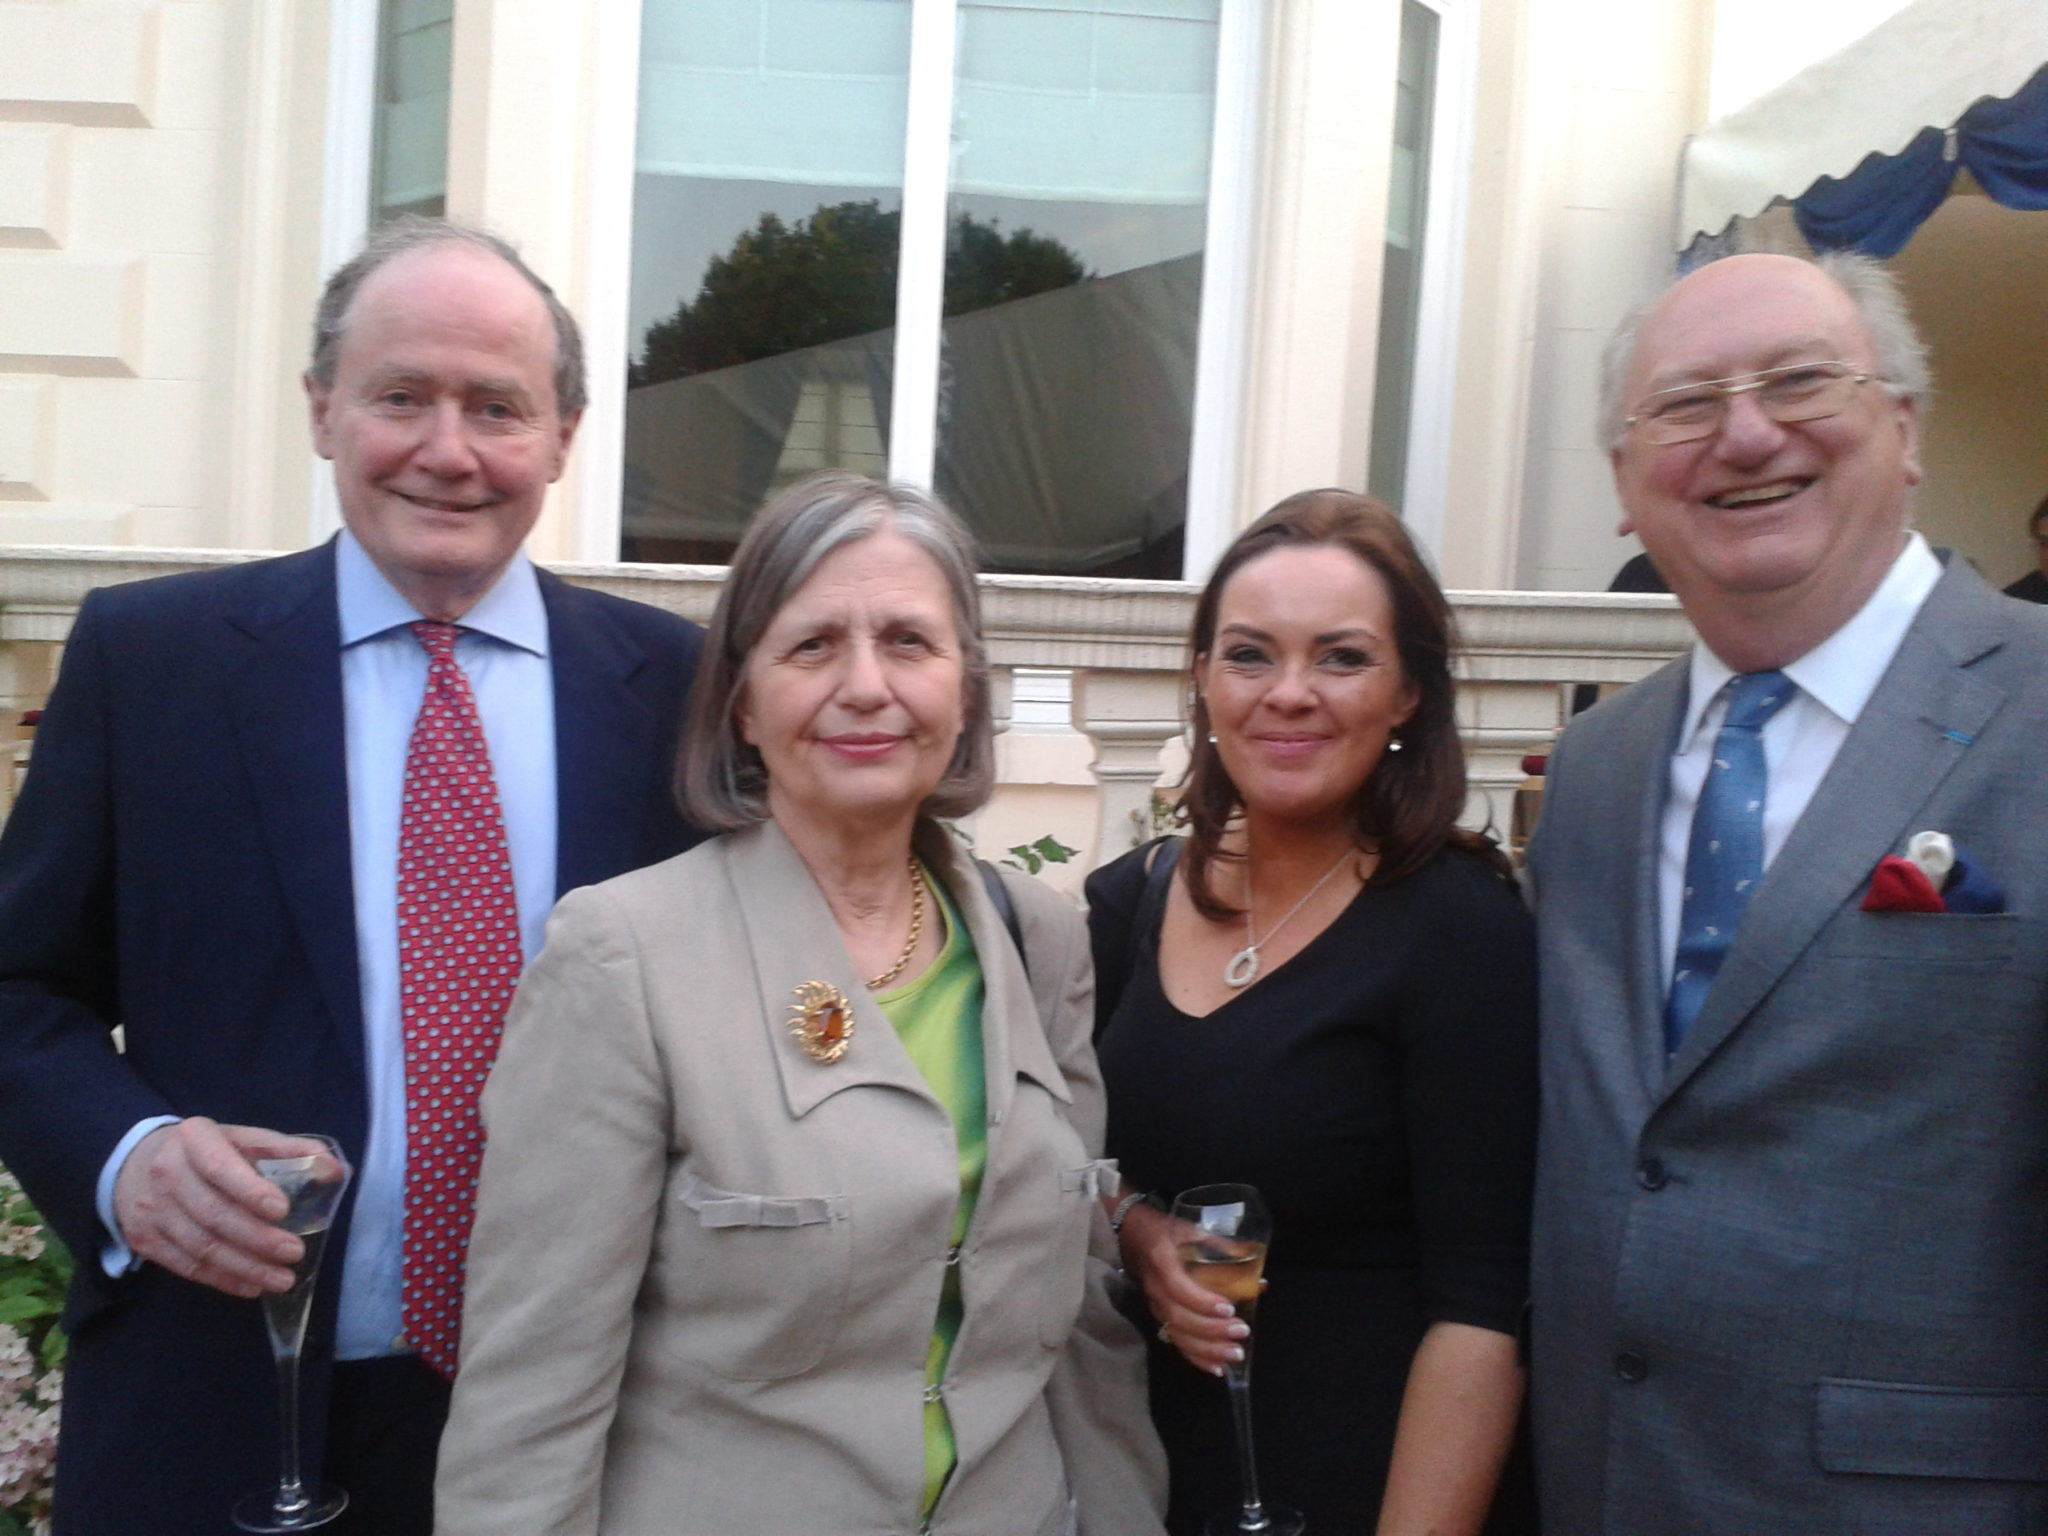 Left to right; Sir Michael TUGENDHAT, Président of the Society; Lady TUGENDHAT; Fionnuala Connolly, Director of the Society, Belfast N.I.; Simon HORSINGTON, Vice-Président d'Honneur, fondateur, of the Society